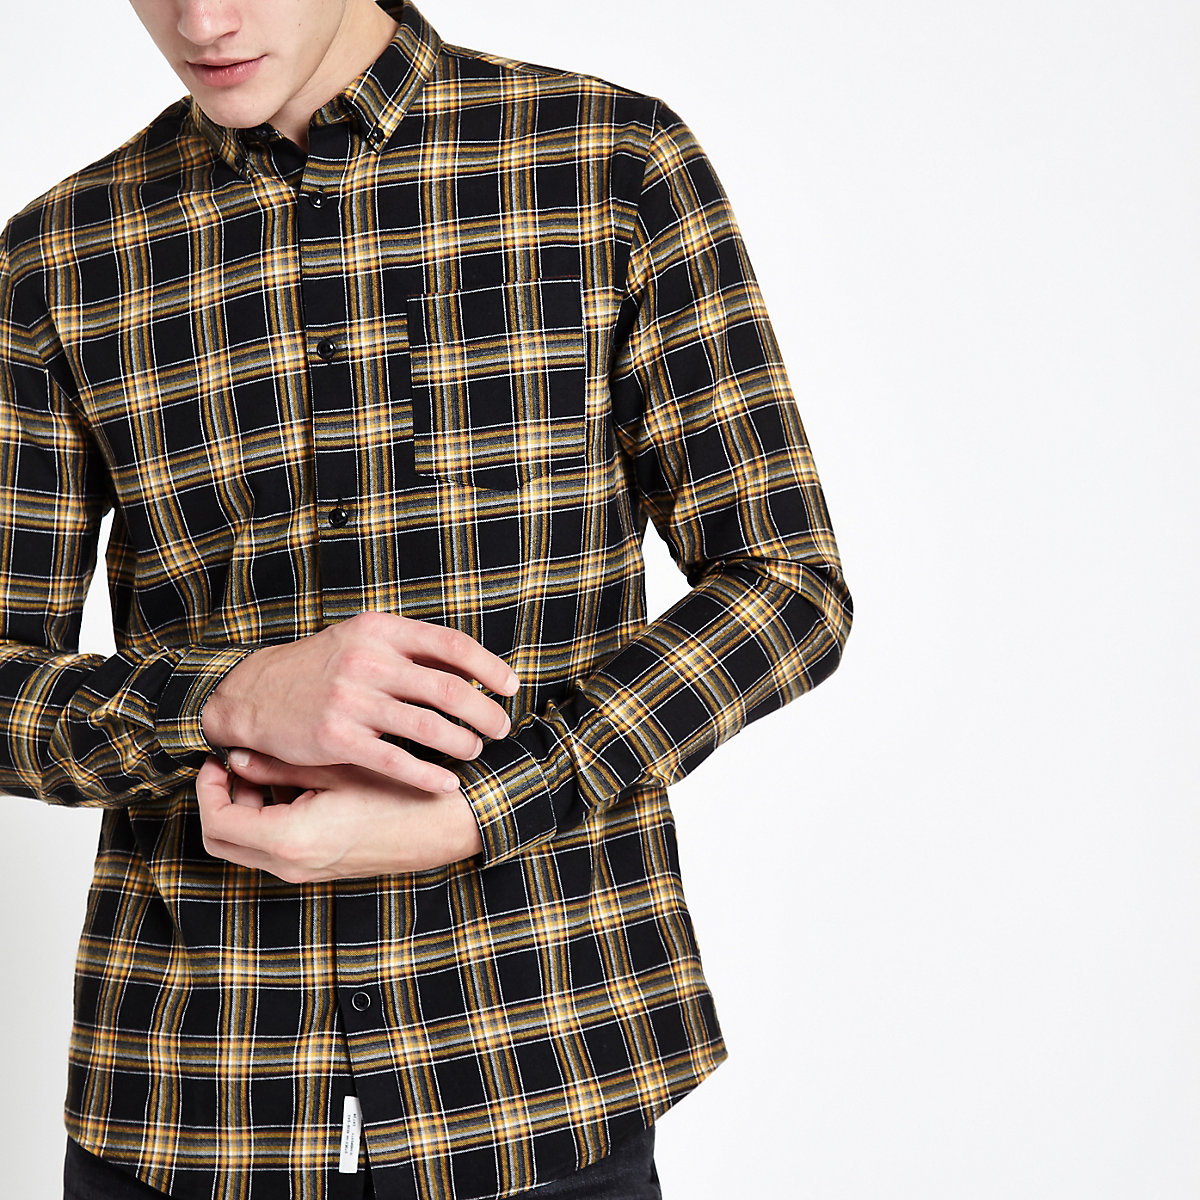 Black and yellow check button-down shirt